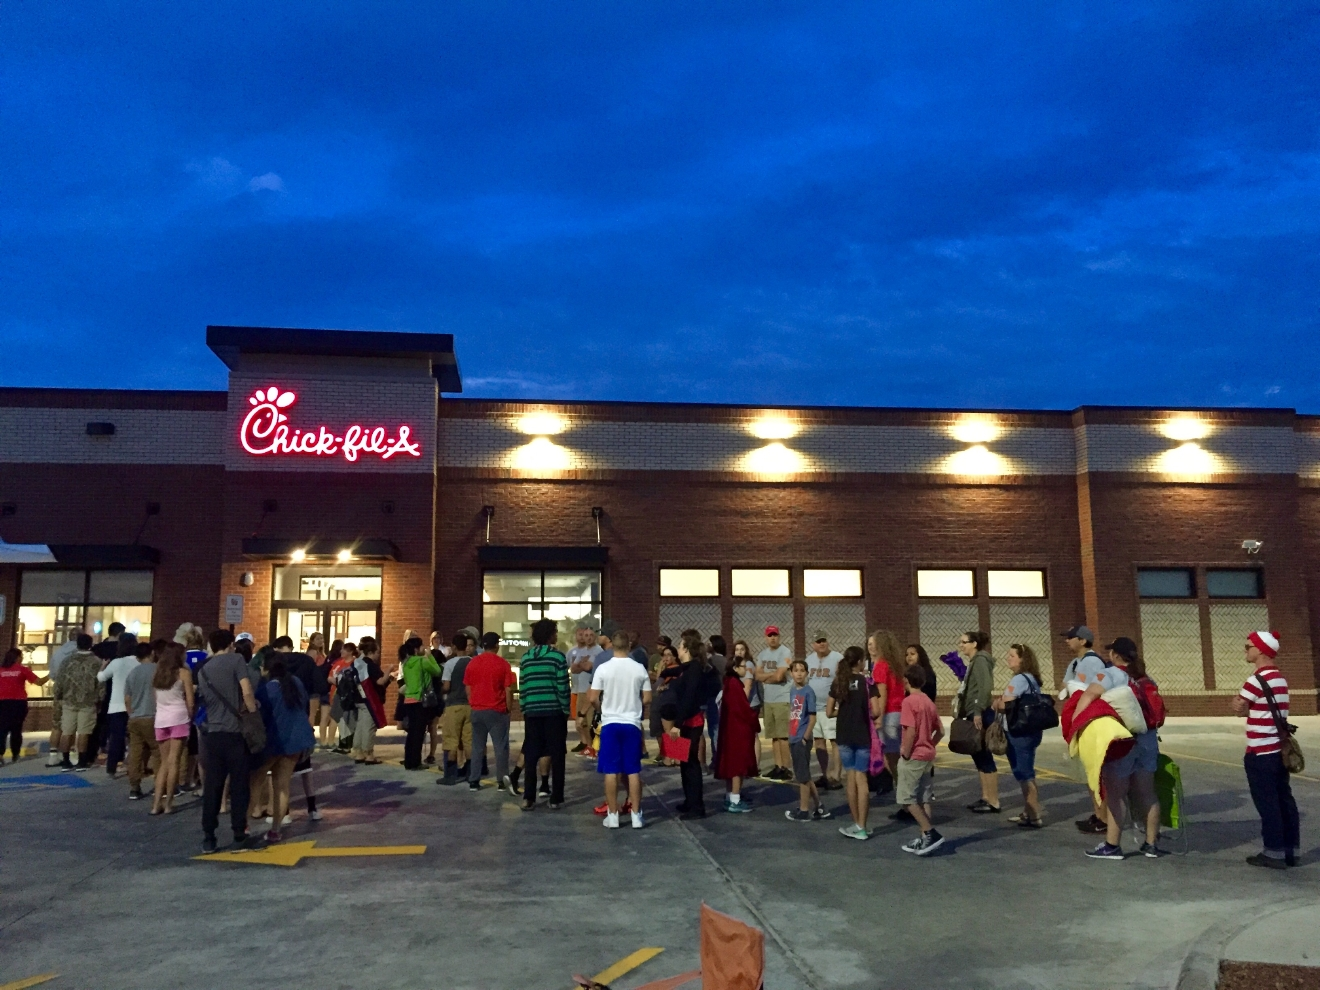 Application. I applied online. The process took 2 weeks. I interviewed at Chick-fil-A (South Riding, VA) in October Interview. You fill out an application on snag-a-job then you schedule a time for an interview in person, both have some of the same questions.